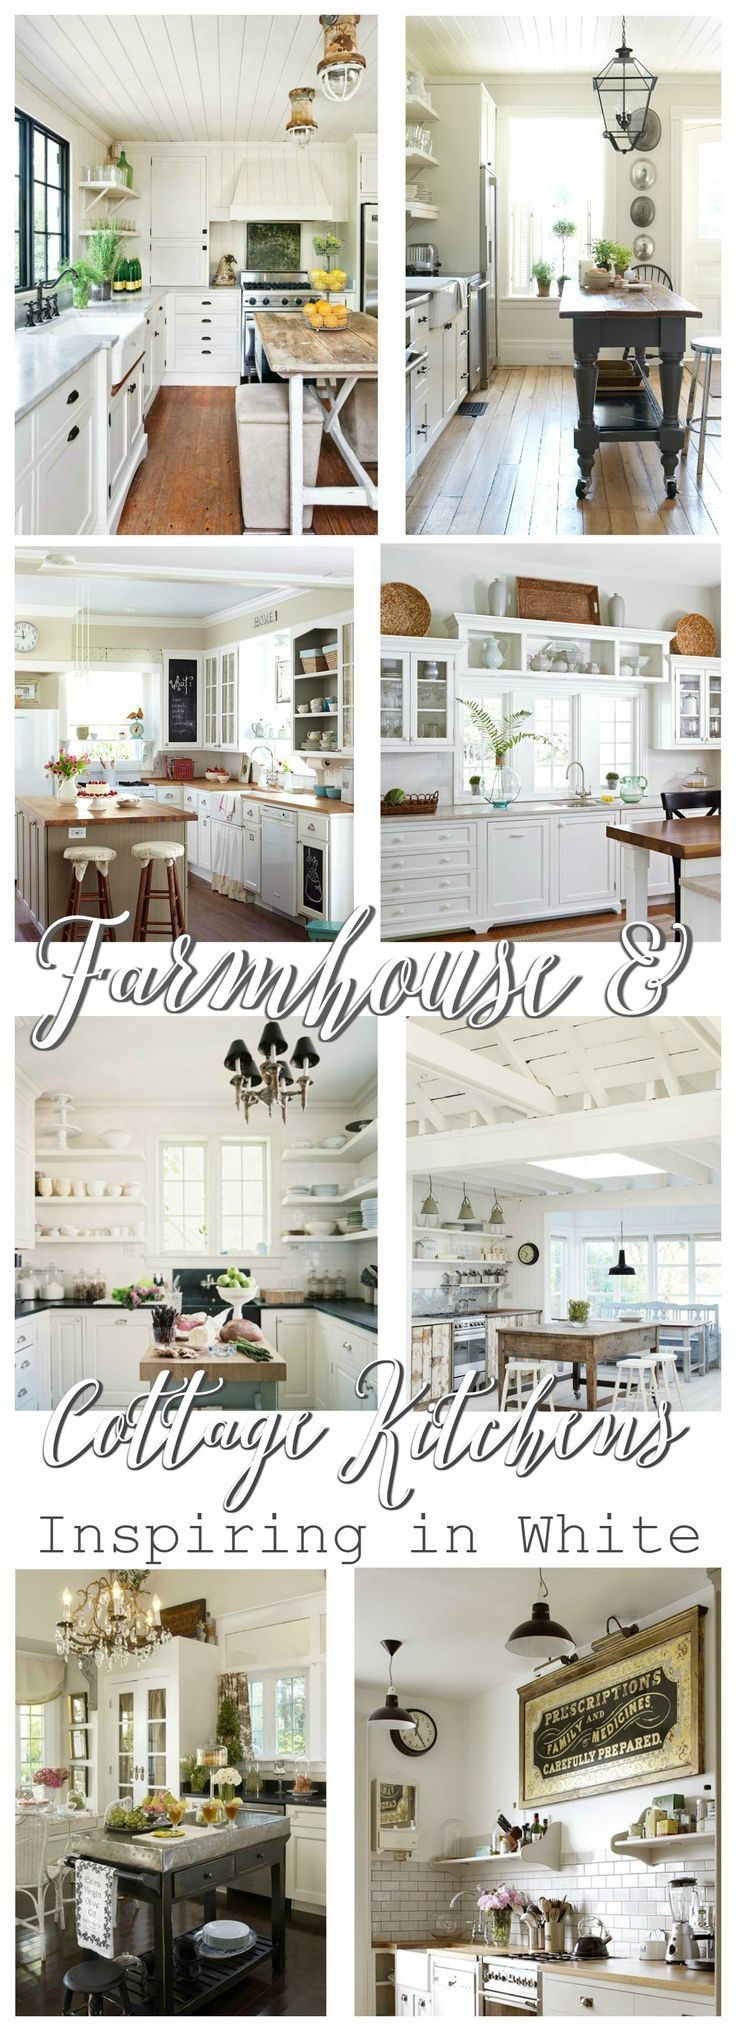 So many vintage to cozy Farmhouse Cottage Kitchens at http://foxhollowcottage.com - Ideas for decorating, inspiring in White!